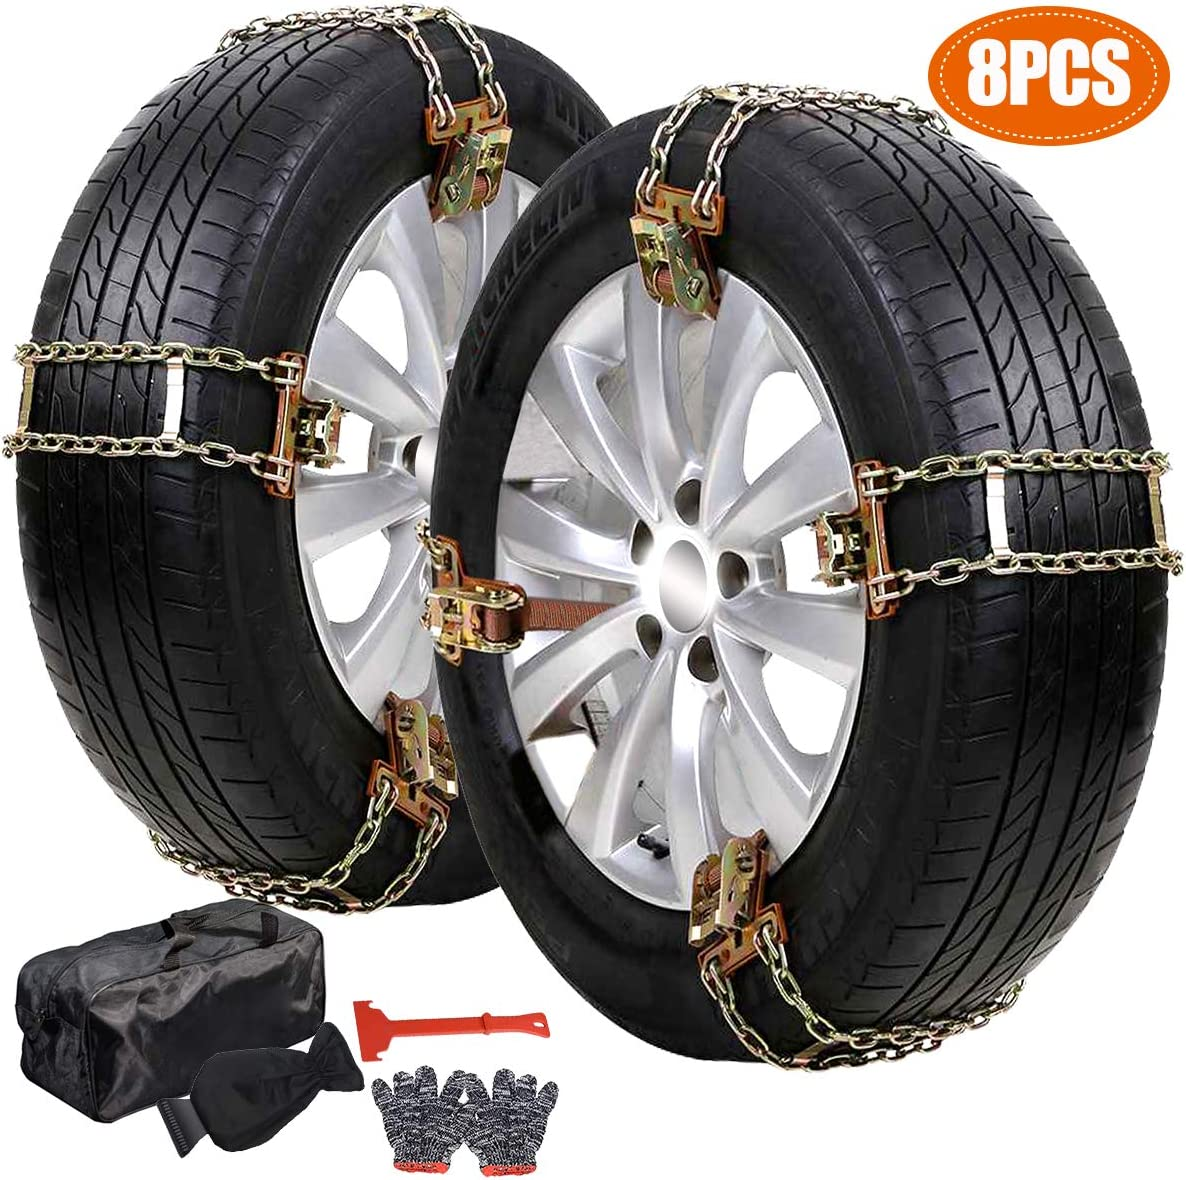 DoCred Tire Snow Chains 6 Pack Tire Chains for Cars//SUVs//Trucks//Pickups of Tire Width 215mm-285mm 8.46-11.22 inch Heavy Duty Thickened Adjustable Snow Chains with Ice Scrapper Gloves